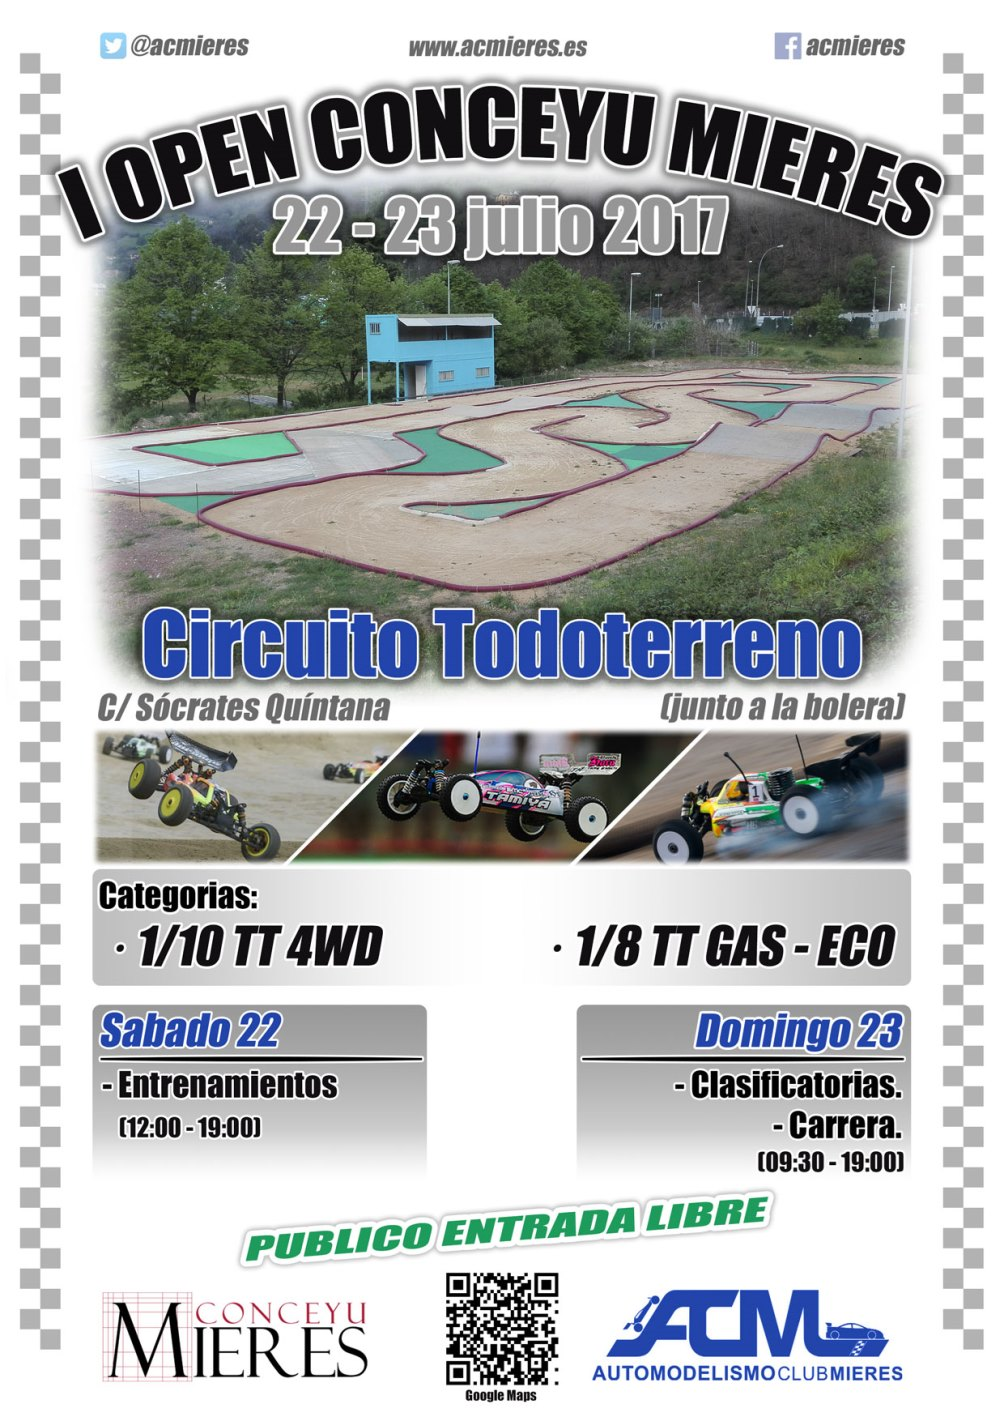 Cartel open automodelismo todoterreno